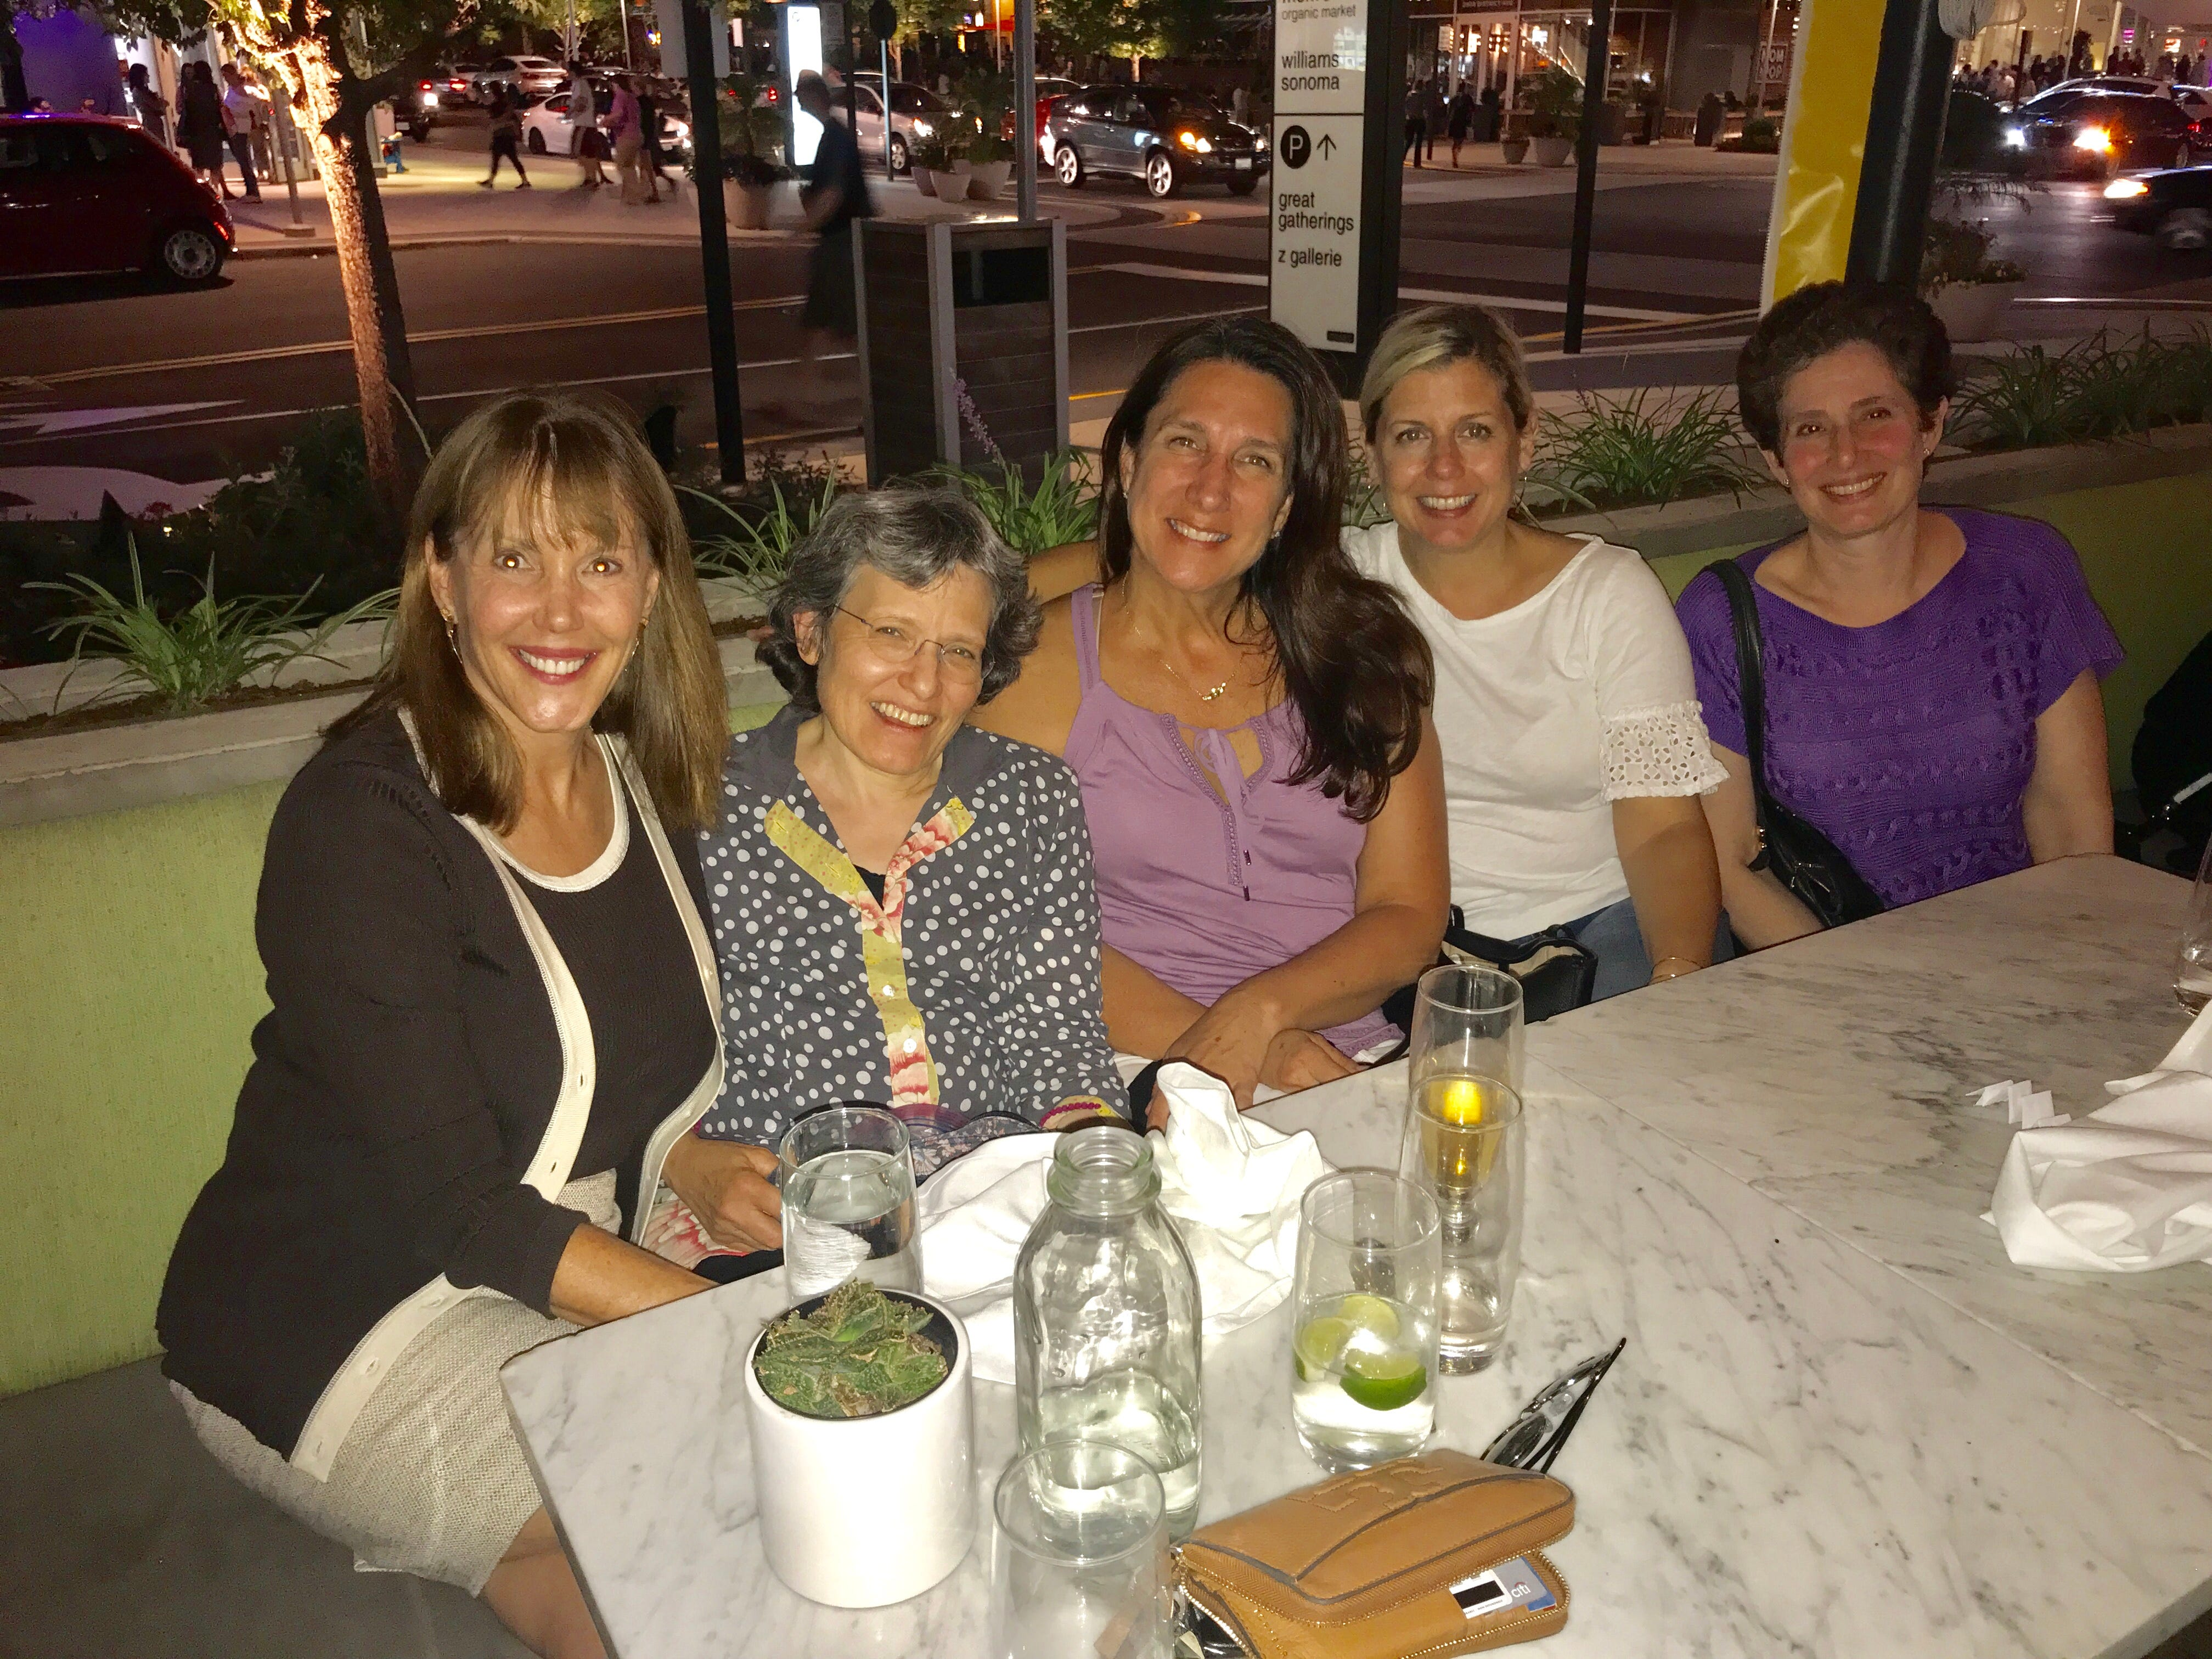 About 18 years after they first met, some of the members of this former support group of new moms reunited now that they are sending those babies to college. L to R, Jayne O'Donnell, Donna Blum-Kemelor, Mandy Parmer, Tricia Hindermann and Debbie Stone.